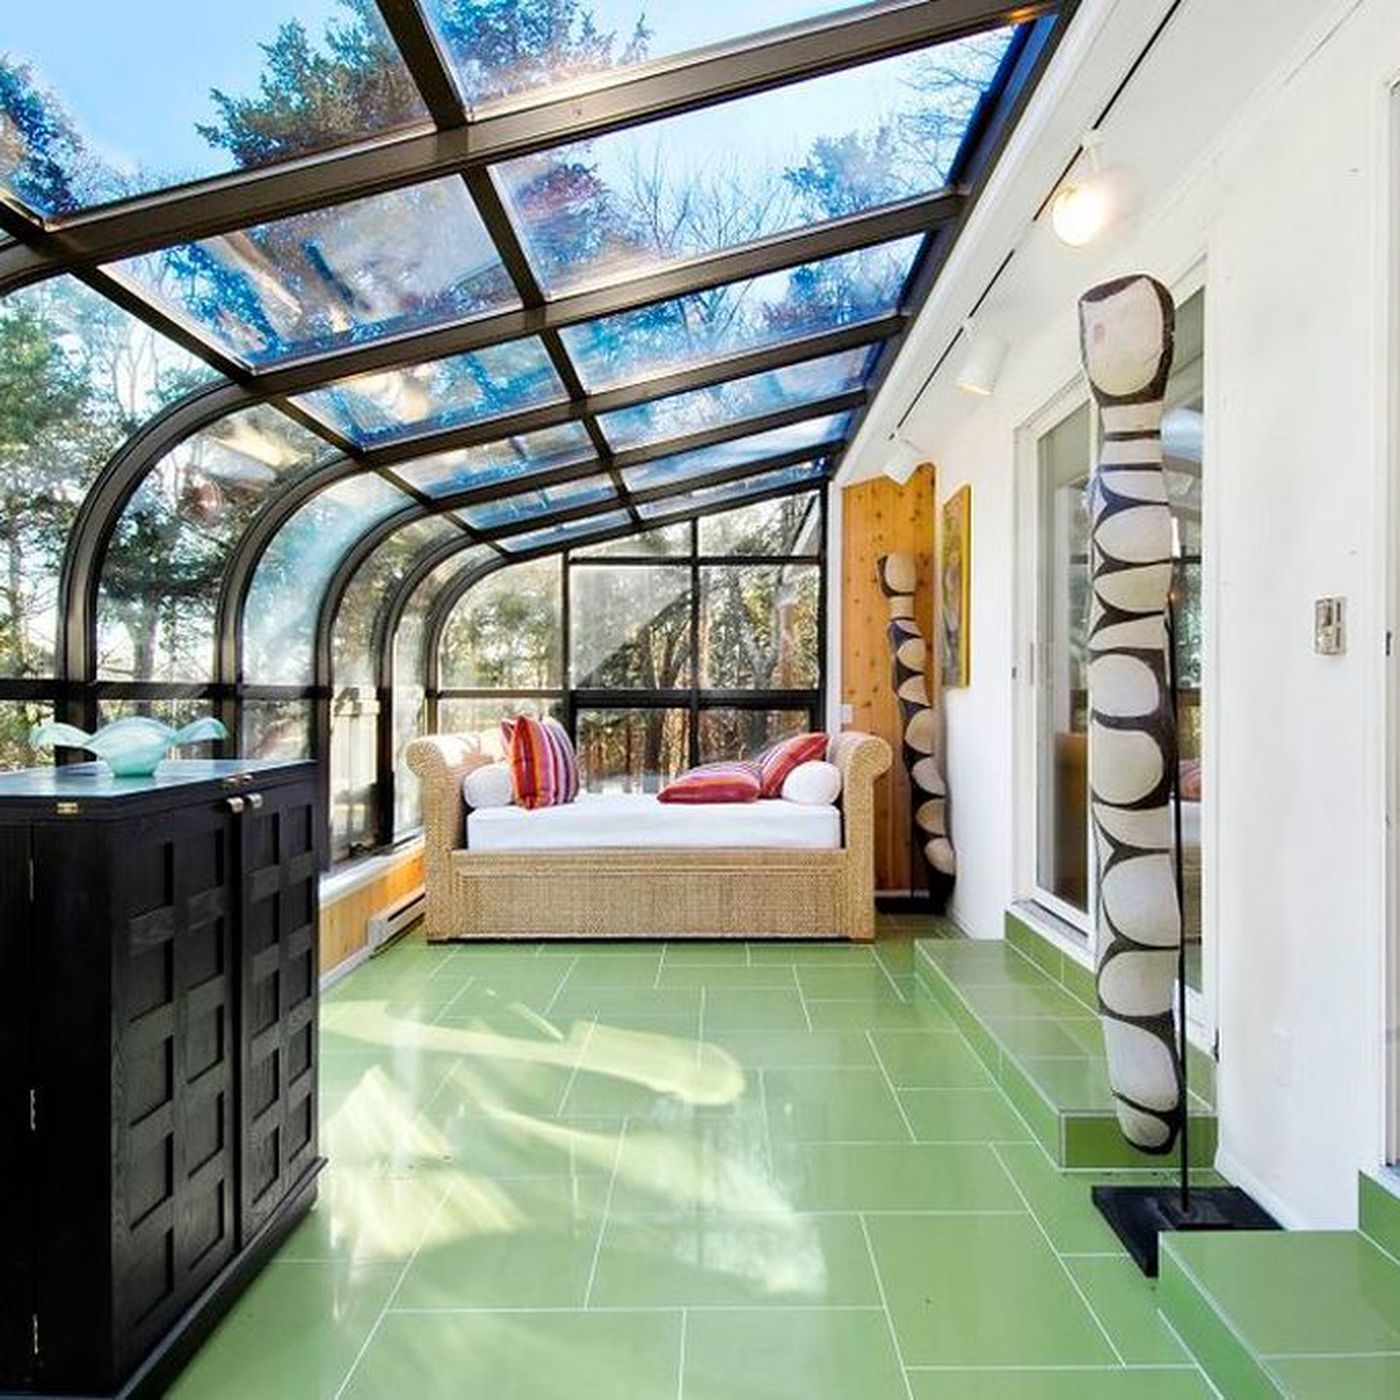 An Attached Greenhouse